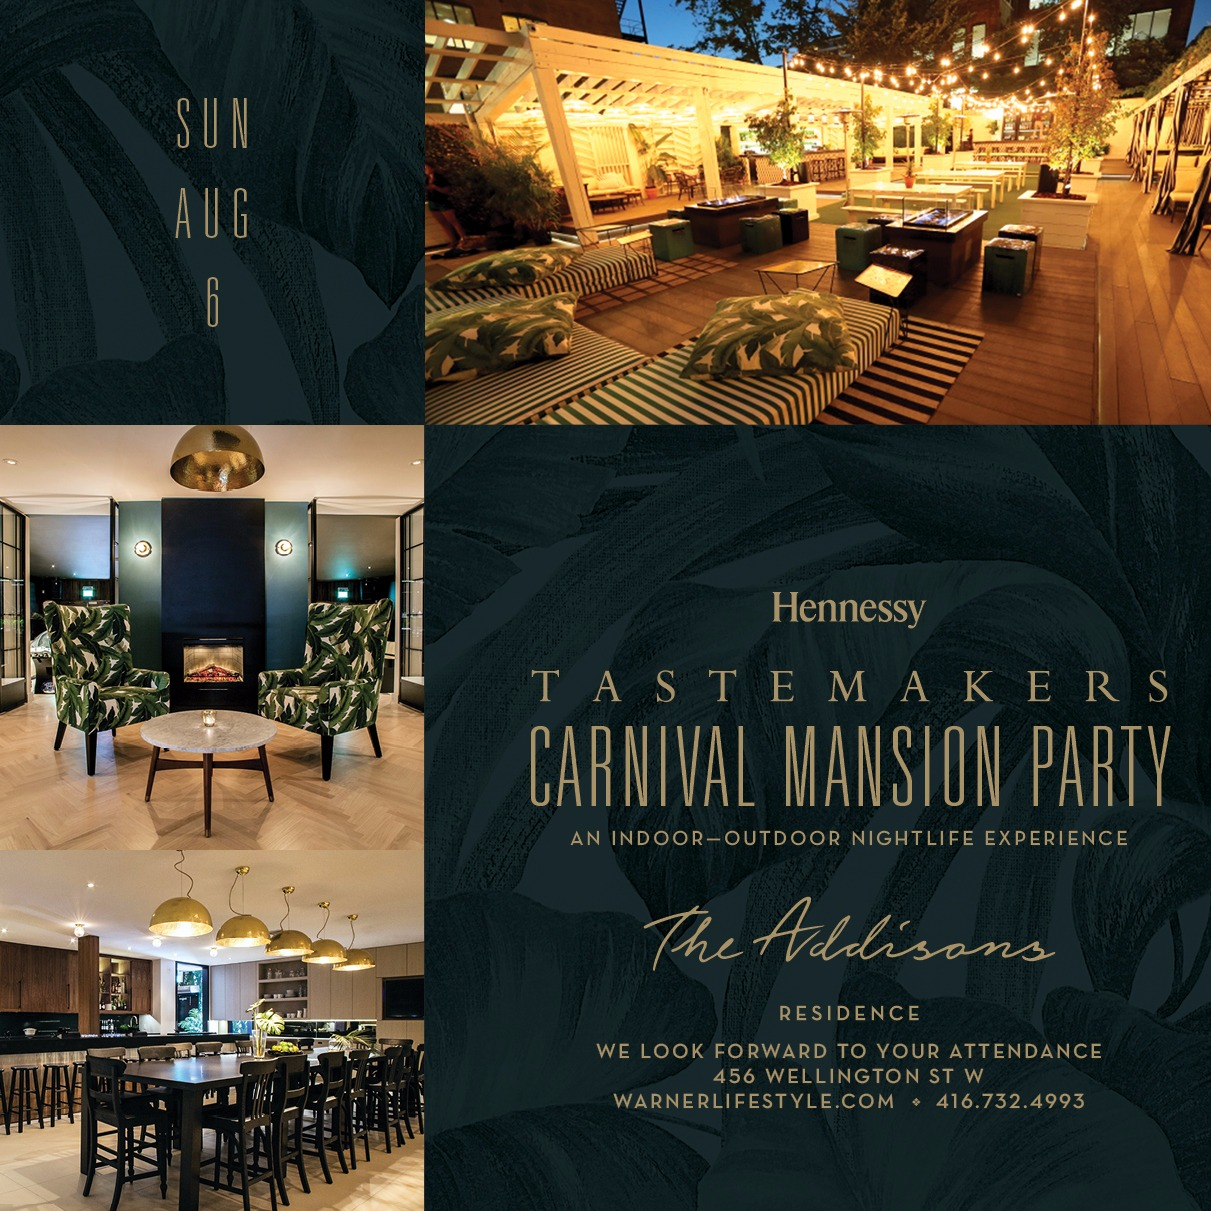 TASTEMAKERS - CARNIVAL MANSION PARTY.